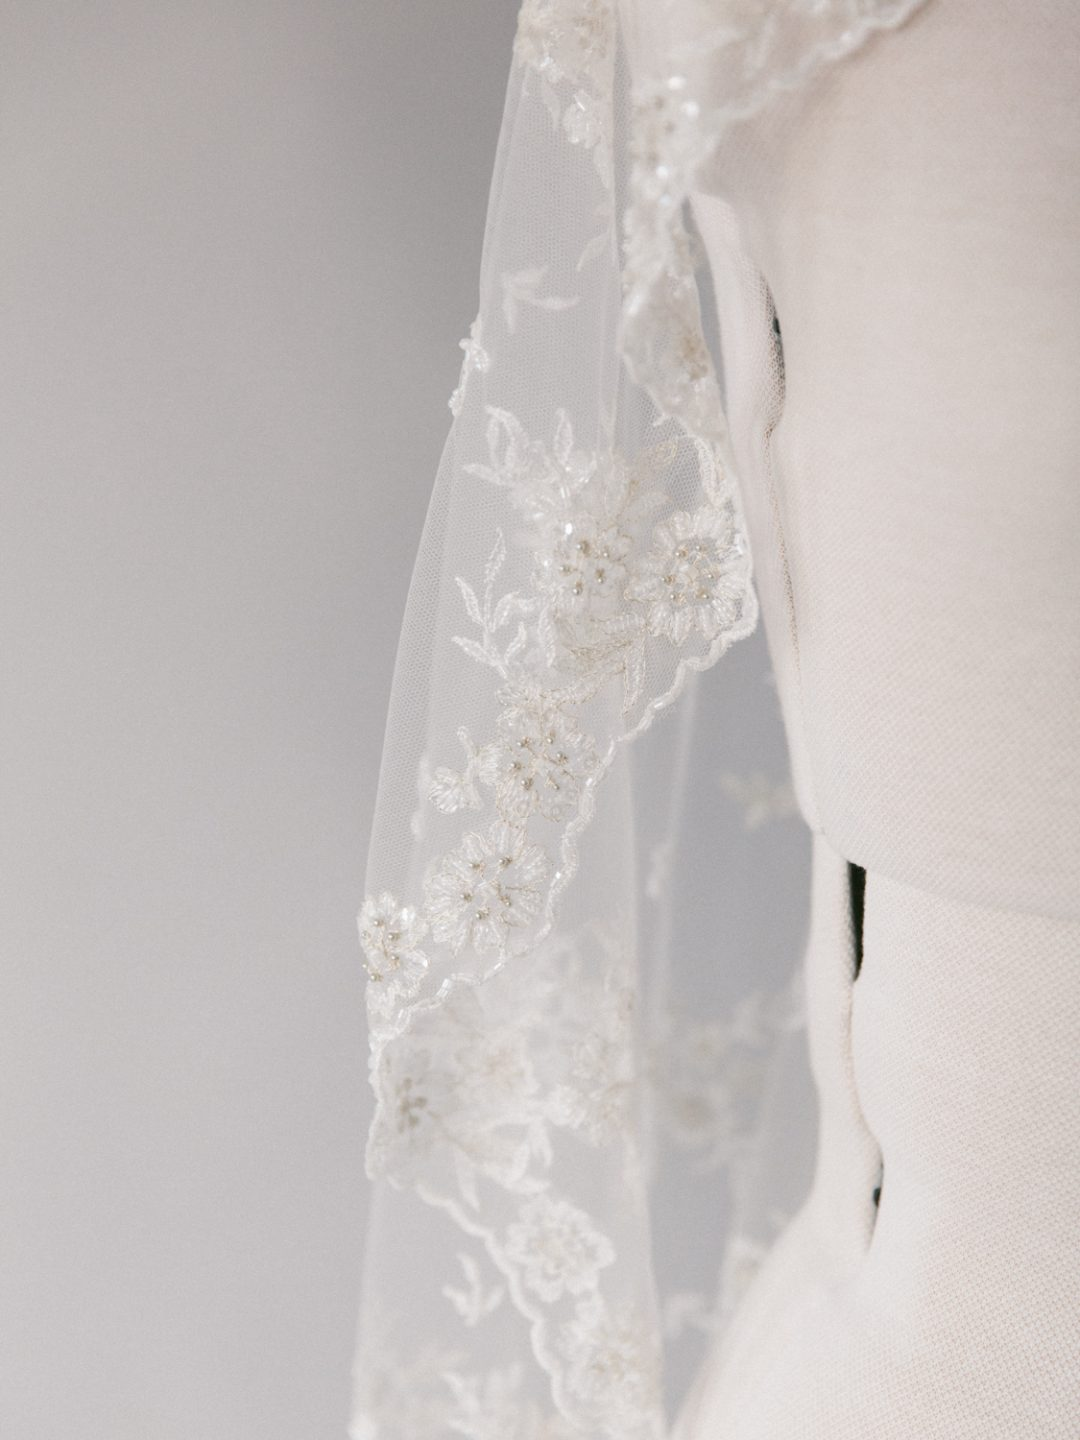 Lace Mantilla Veil - Timeless Romance - SIBO Designs www.sibodesigns.com